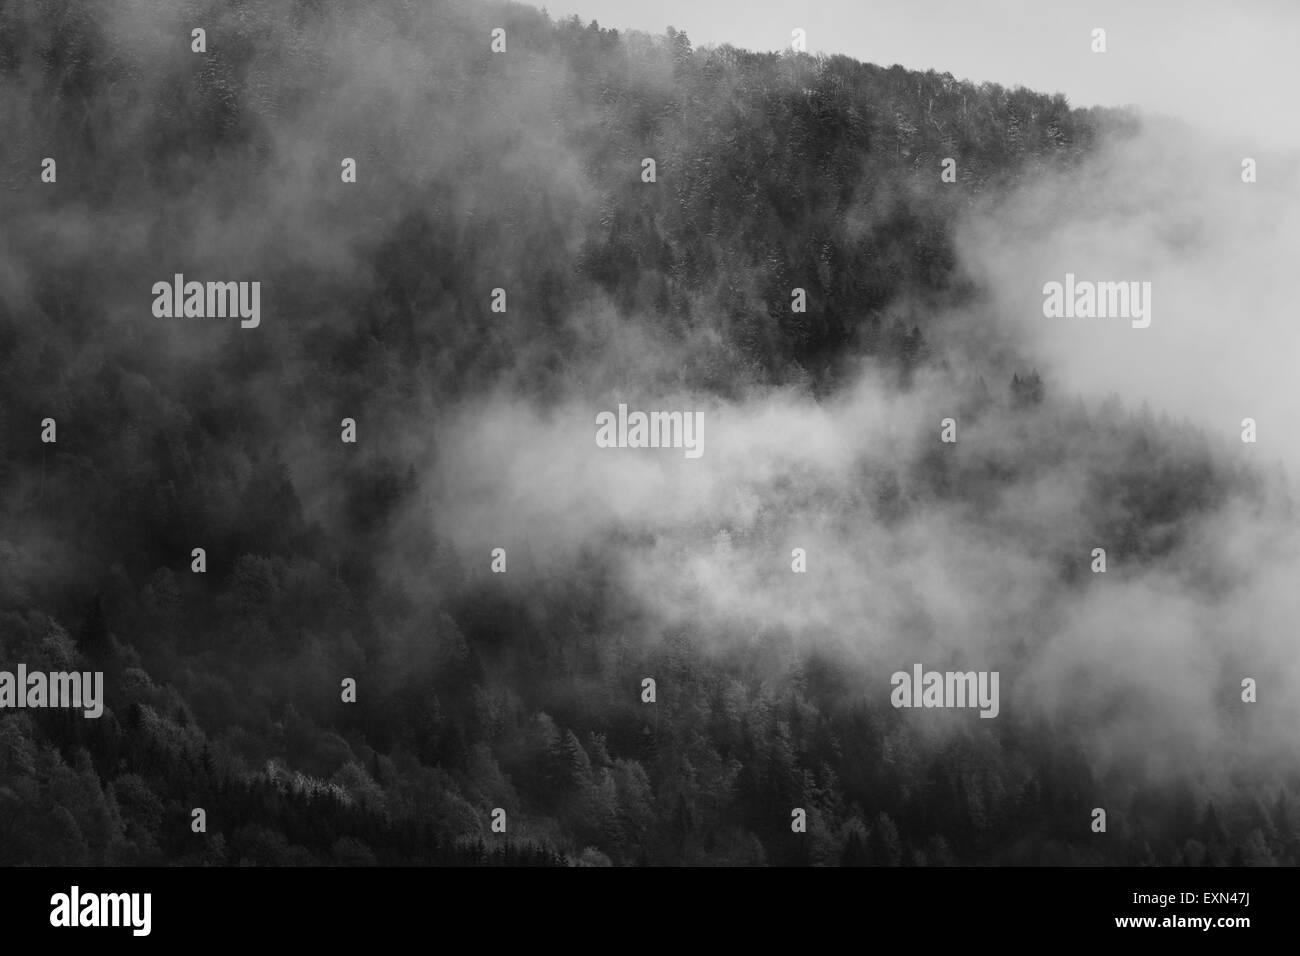 Clouds over a pine forest in the Bauges mountains near Chambery, French Alps. - Stock Image